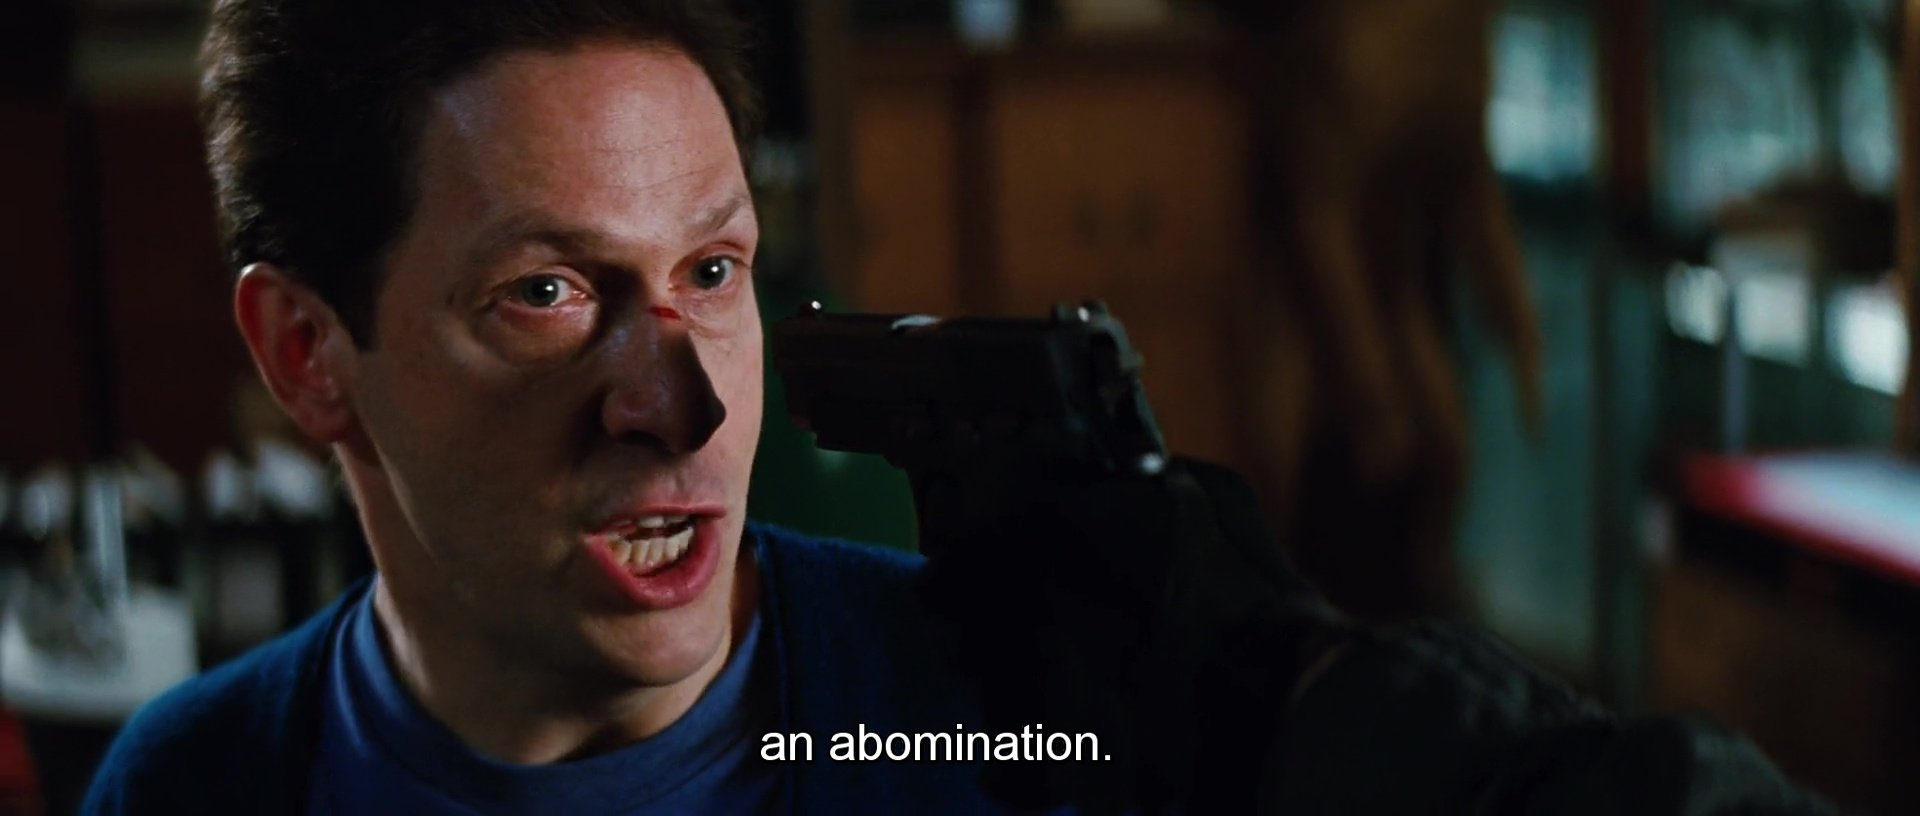 'An Abomination'